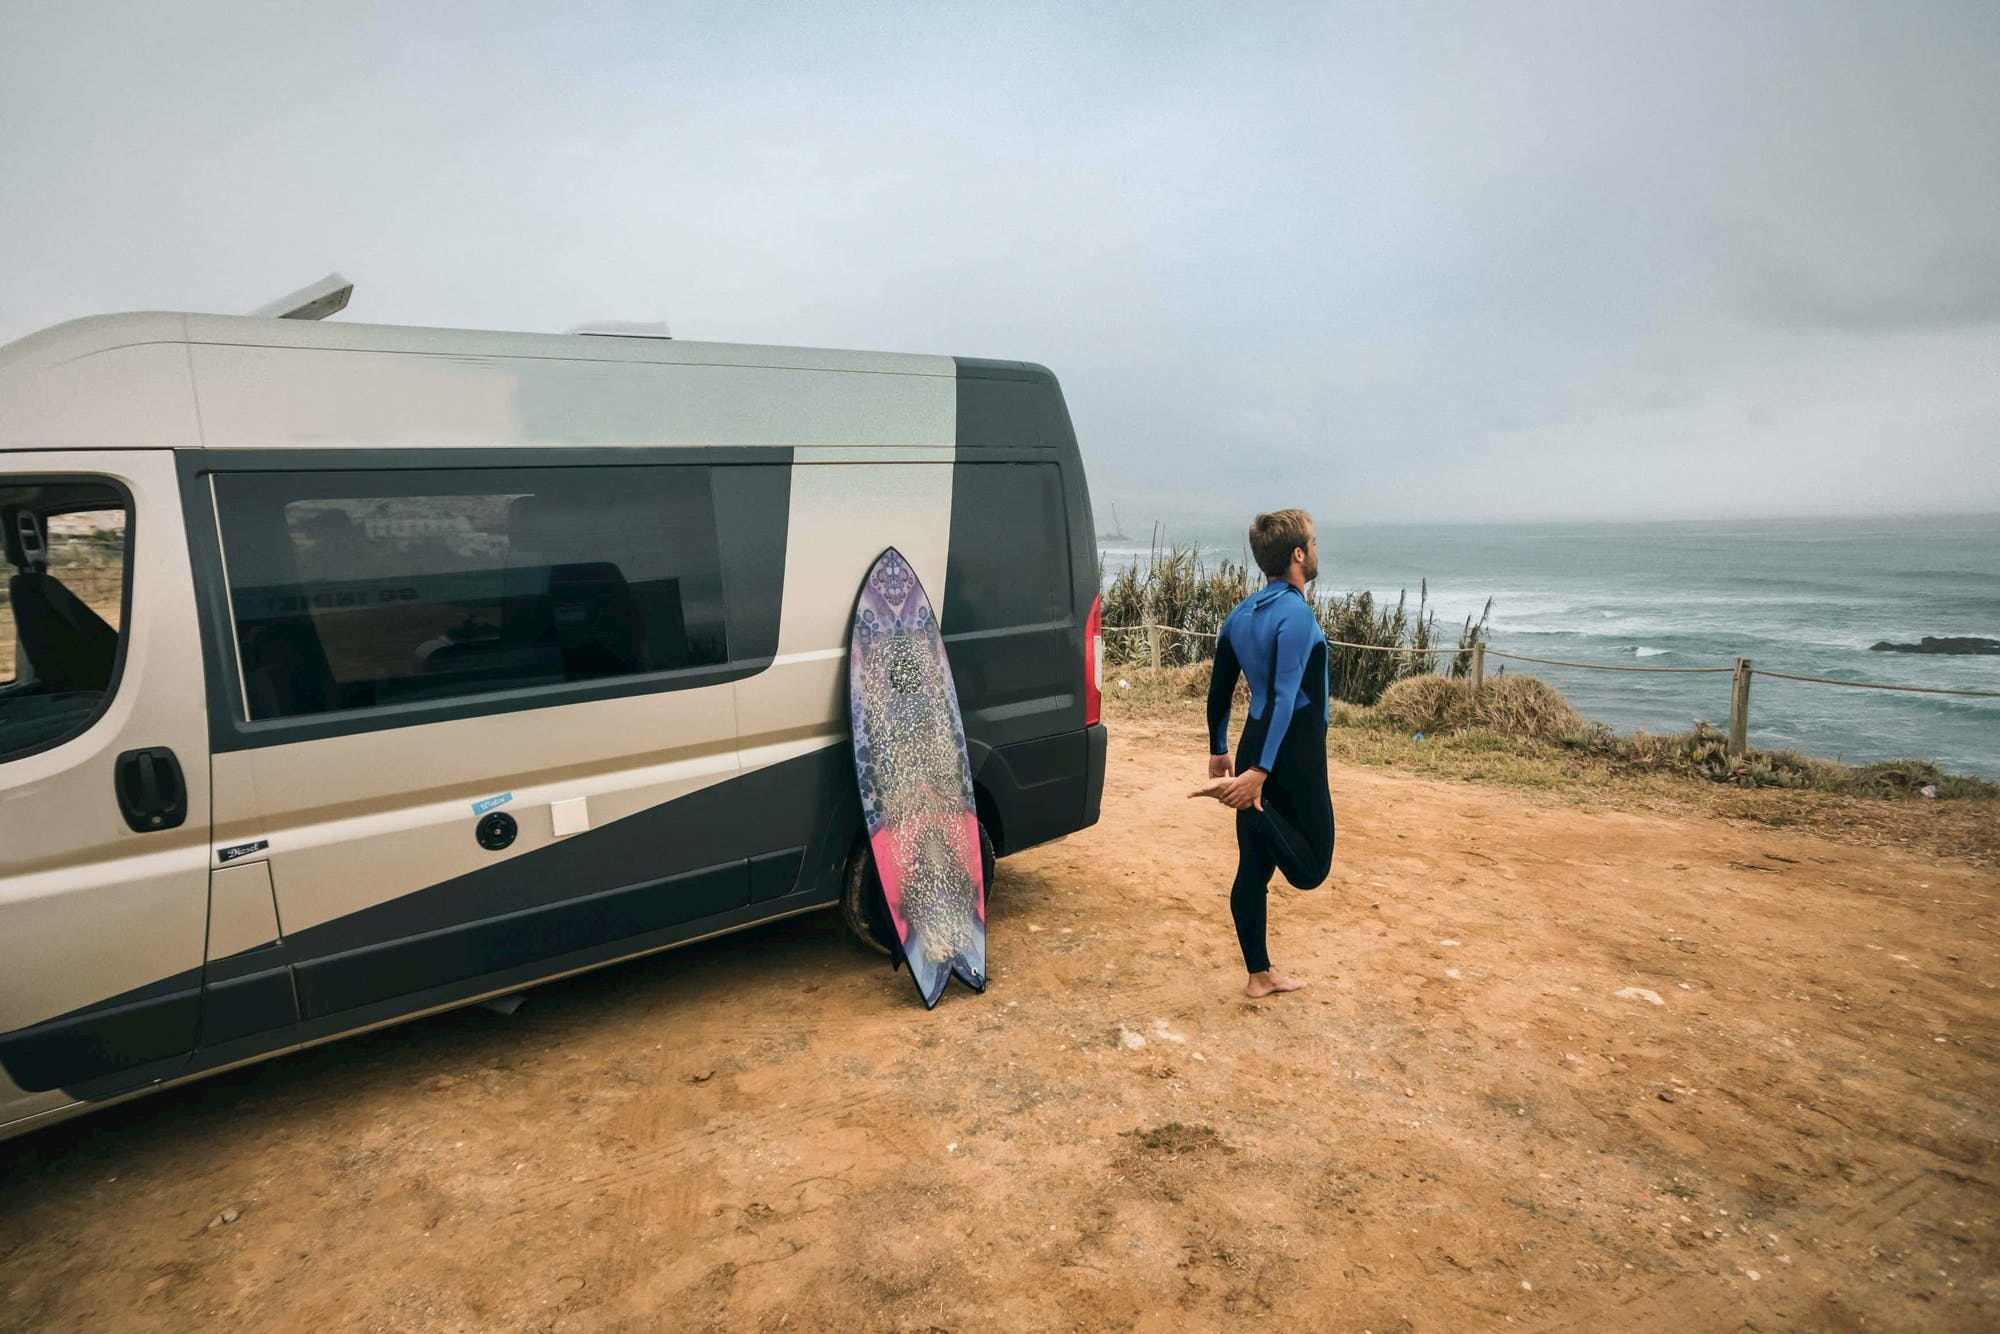 Man stretching next to the campervan Active Model from Indie Campers